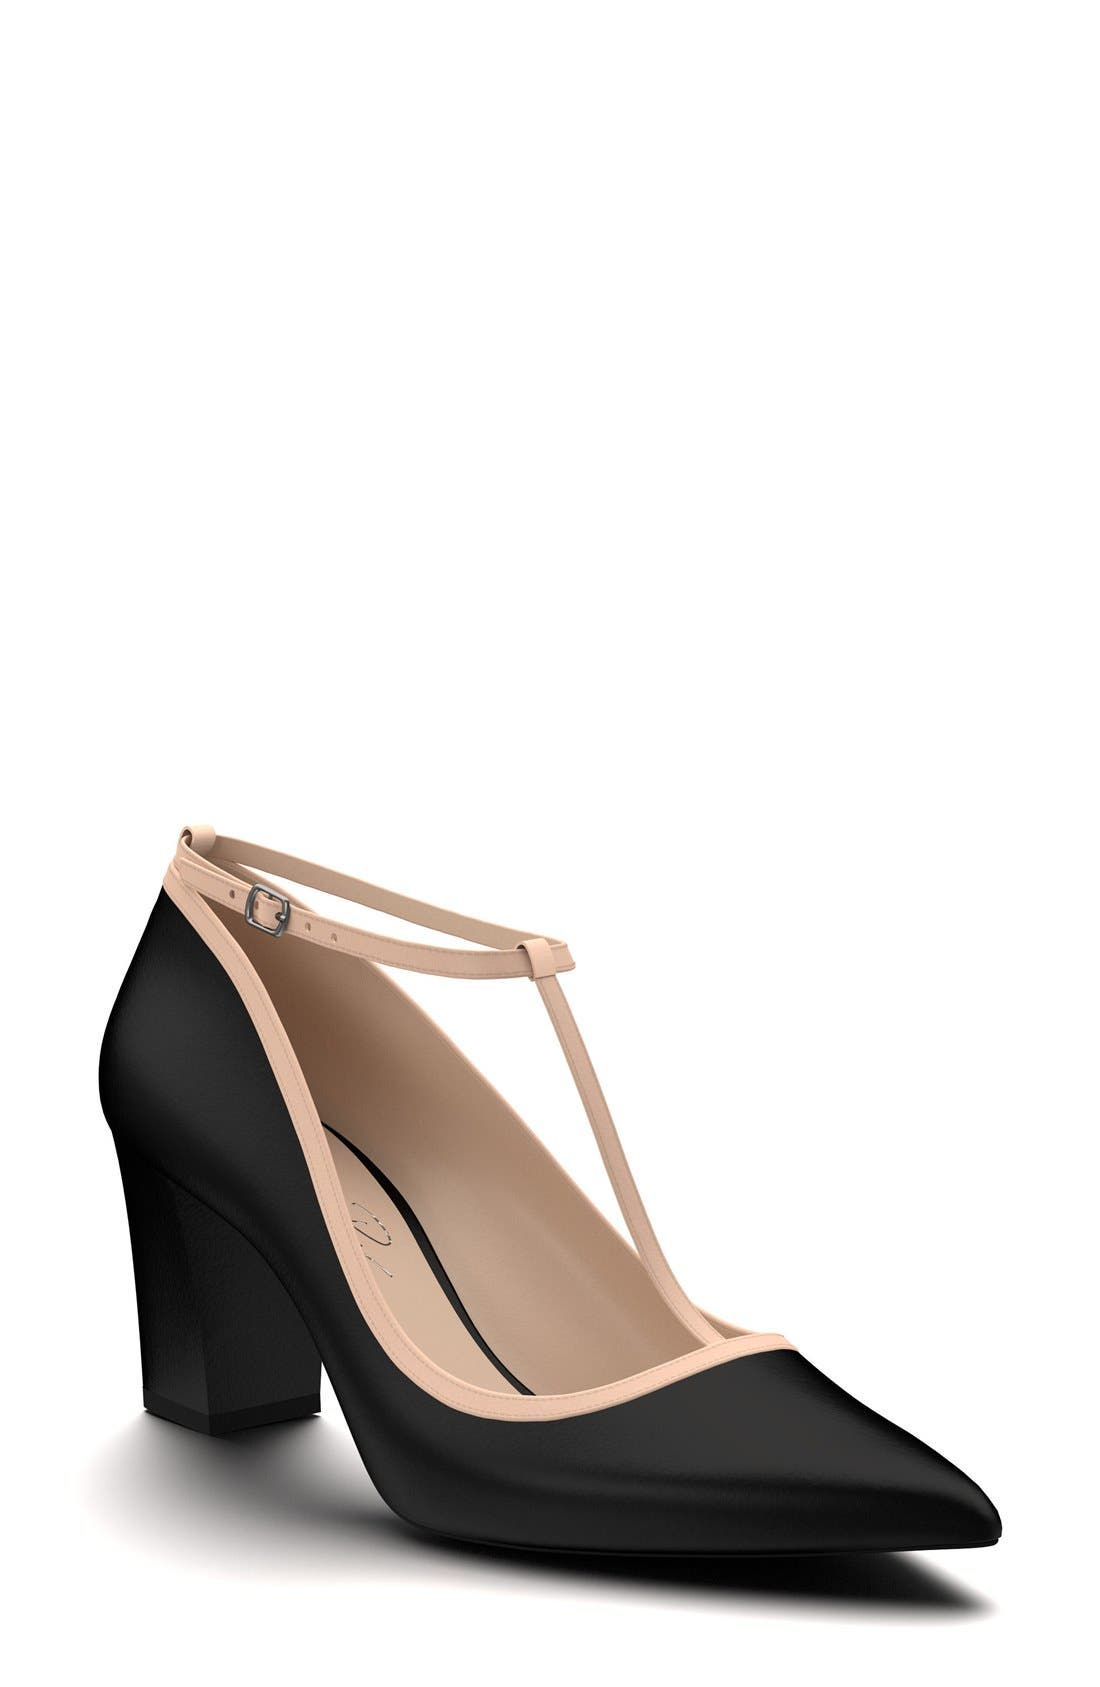 Pointy Toe Pump,                             Main thumbnail 1, color,                             Black Leather